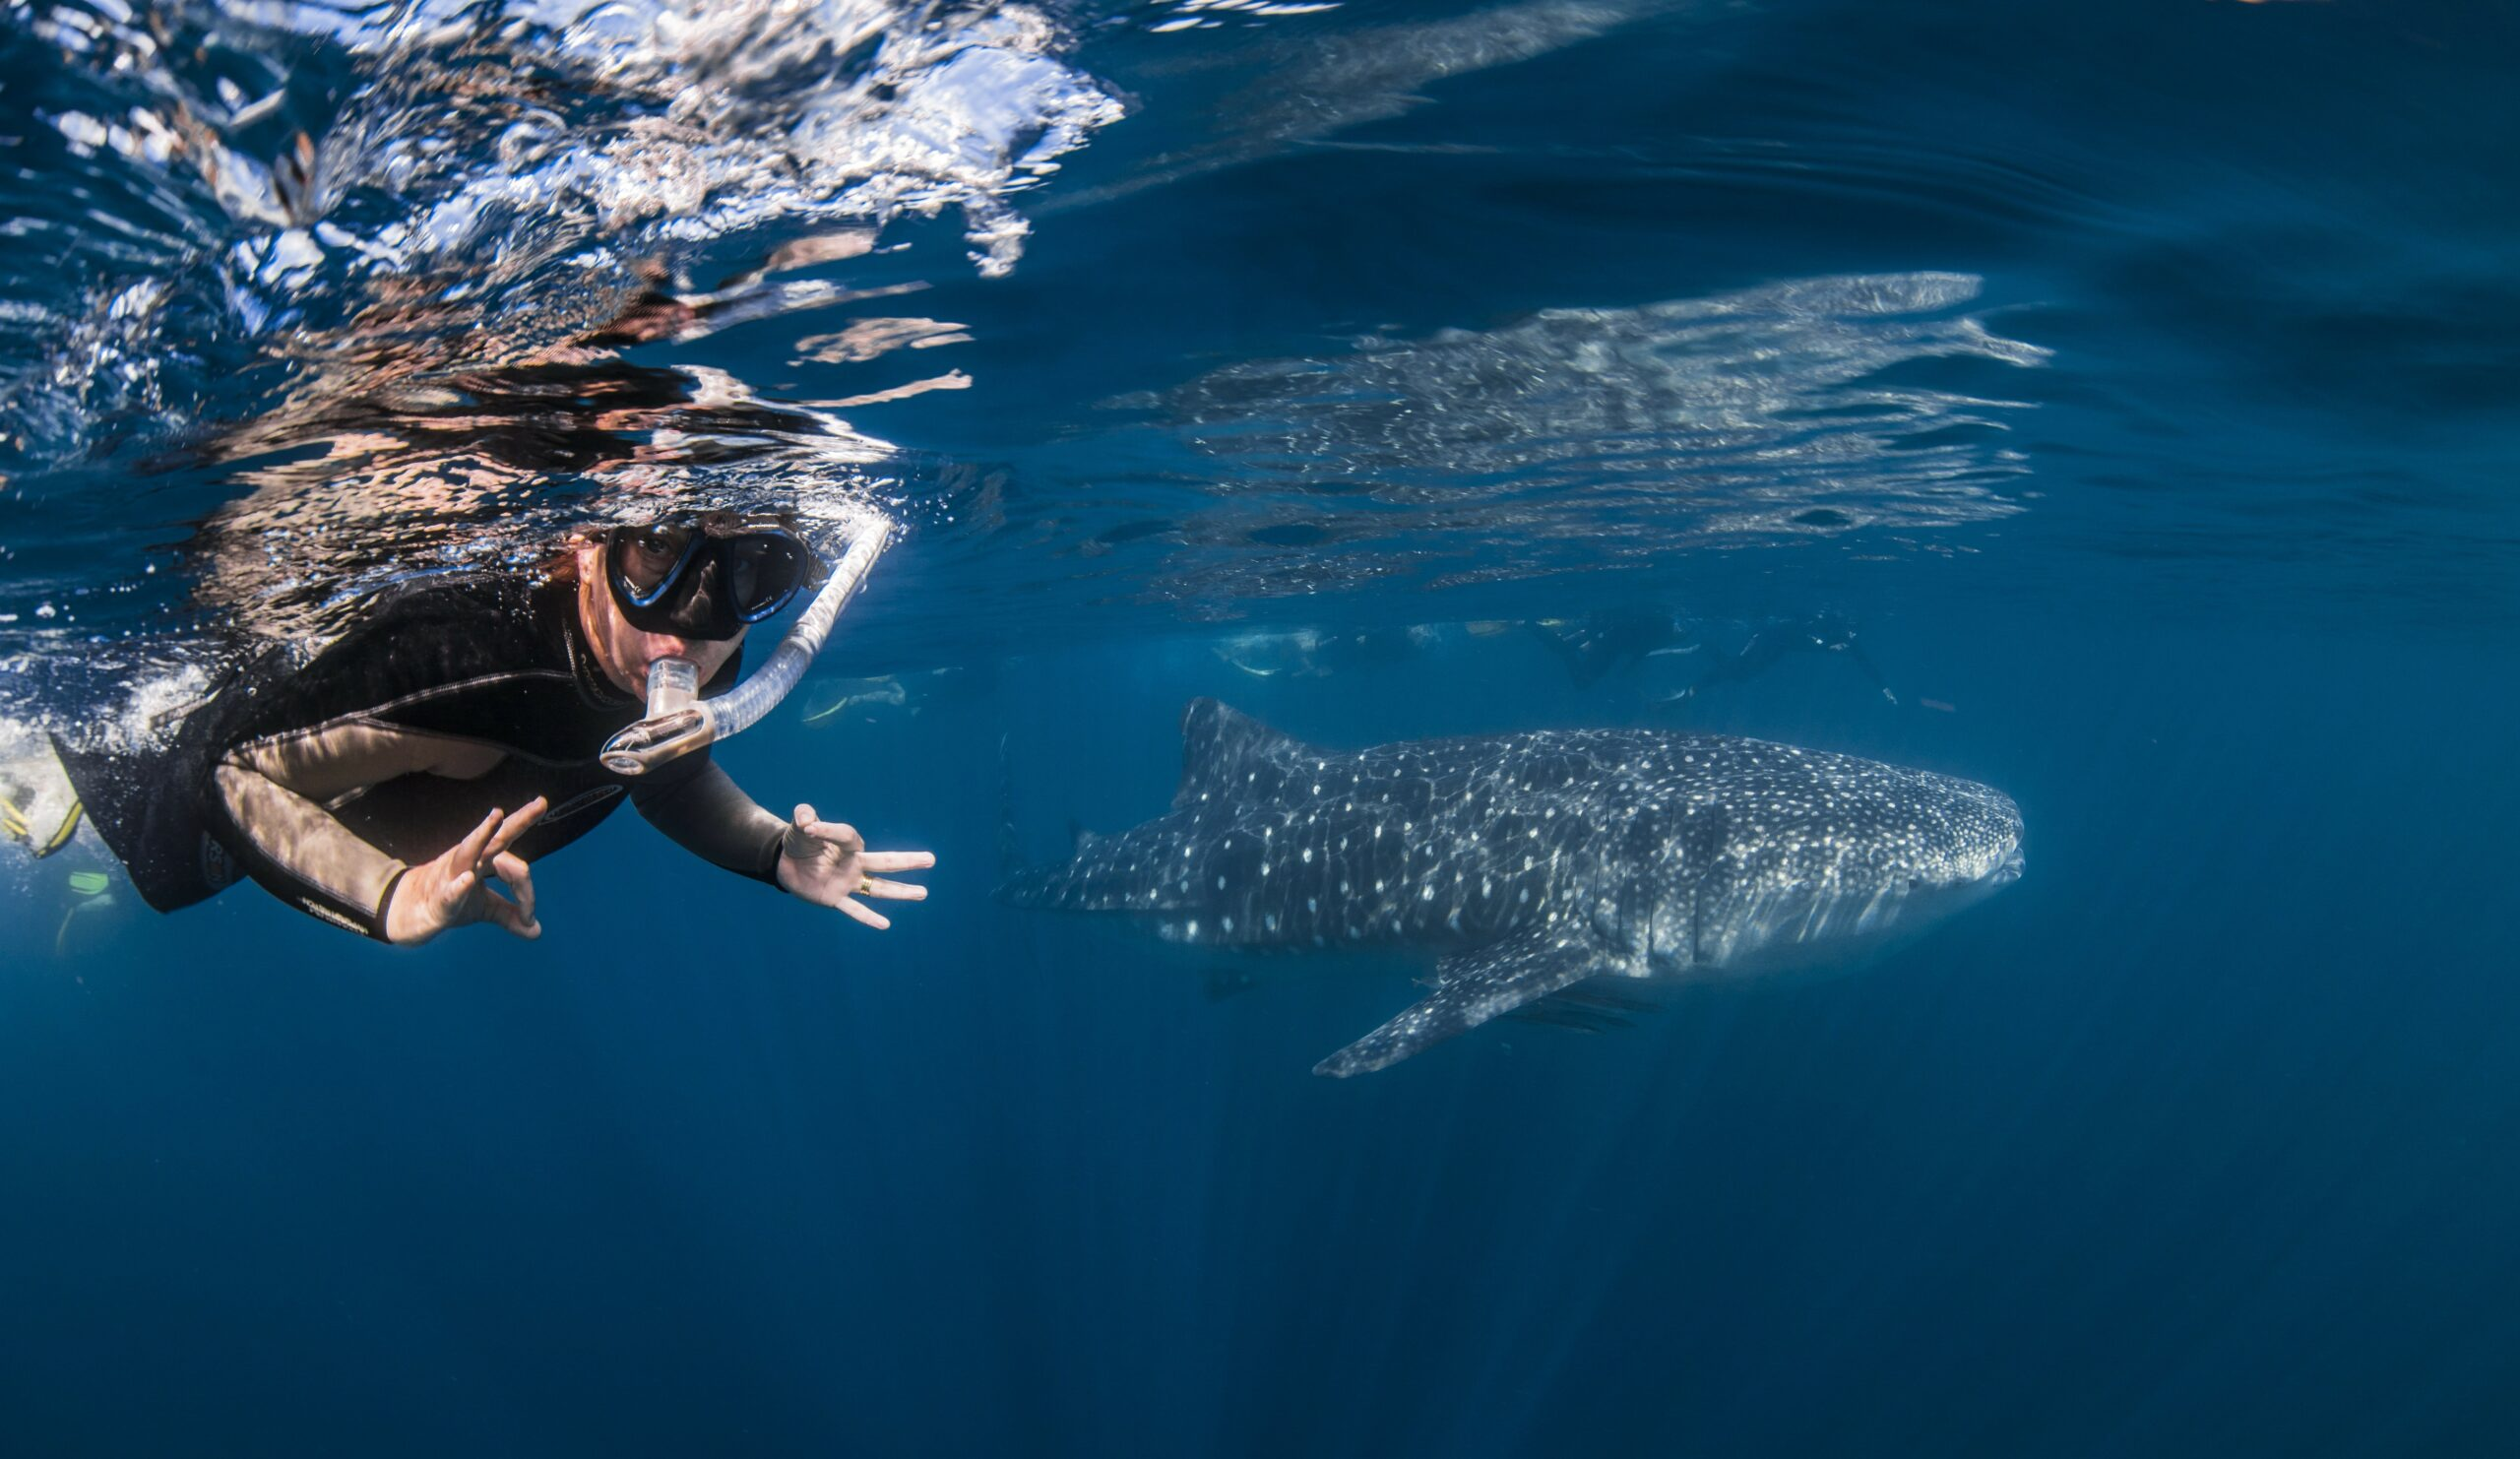 Deluxe Whaleshark Swim Tour aboard MV JAZZ 2            (1 of 2 Boats available).